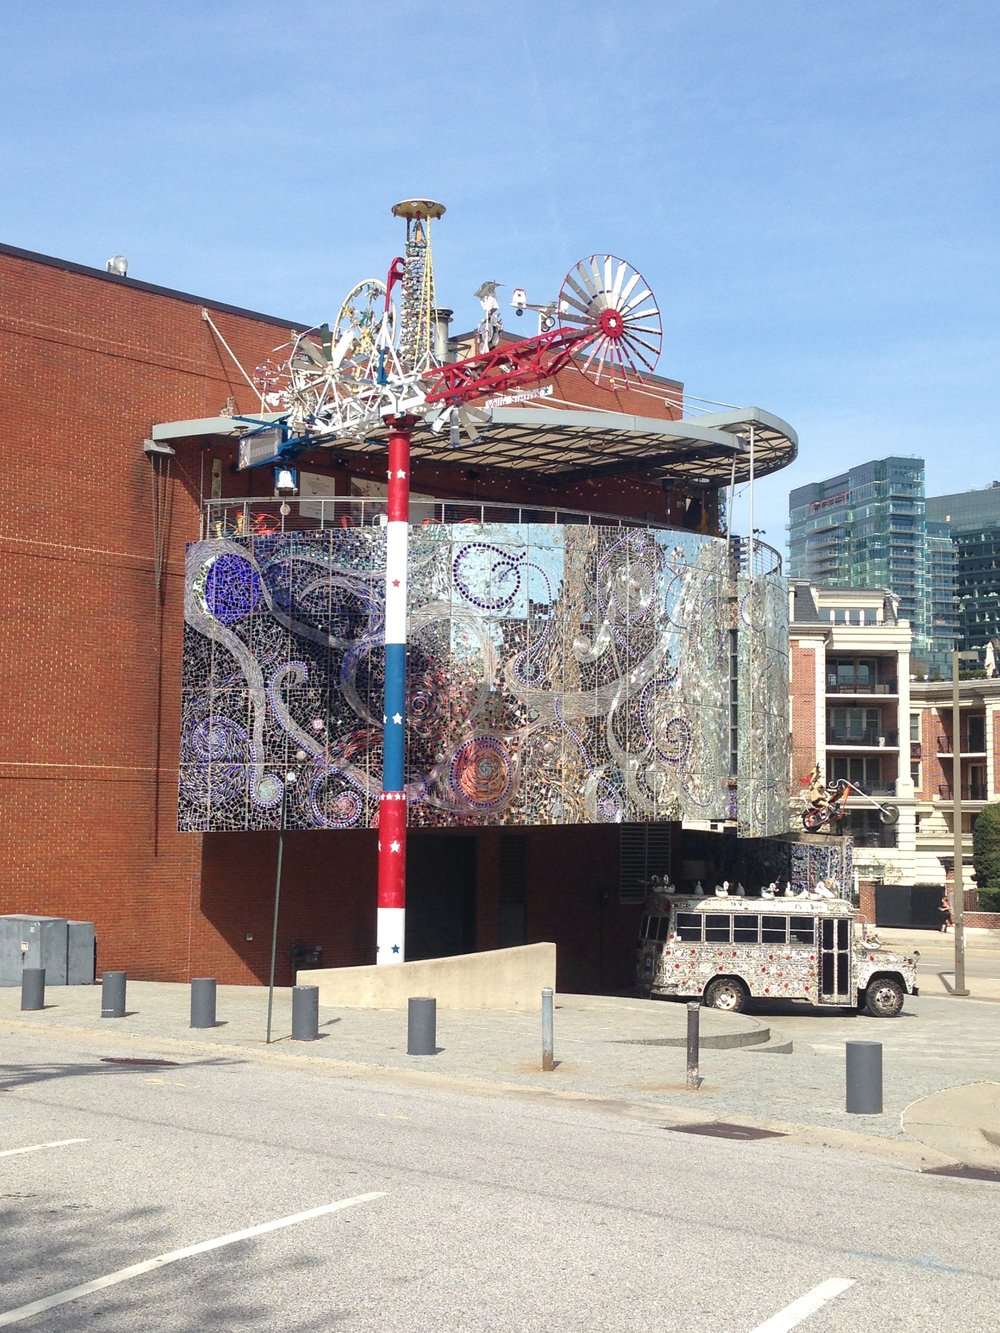 The American Visionary Art Museum in Baltimore. It was closed on the day I went, but I hope to go back another time.